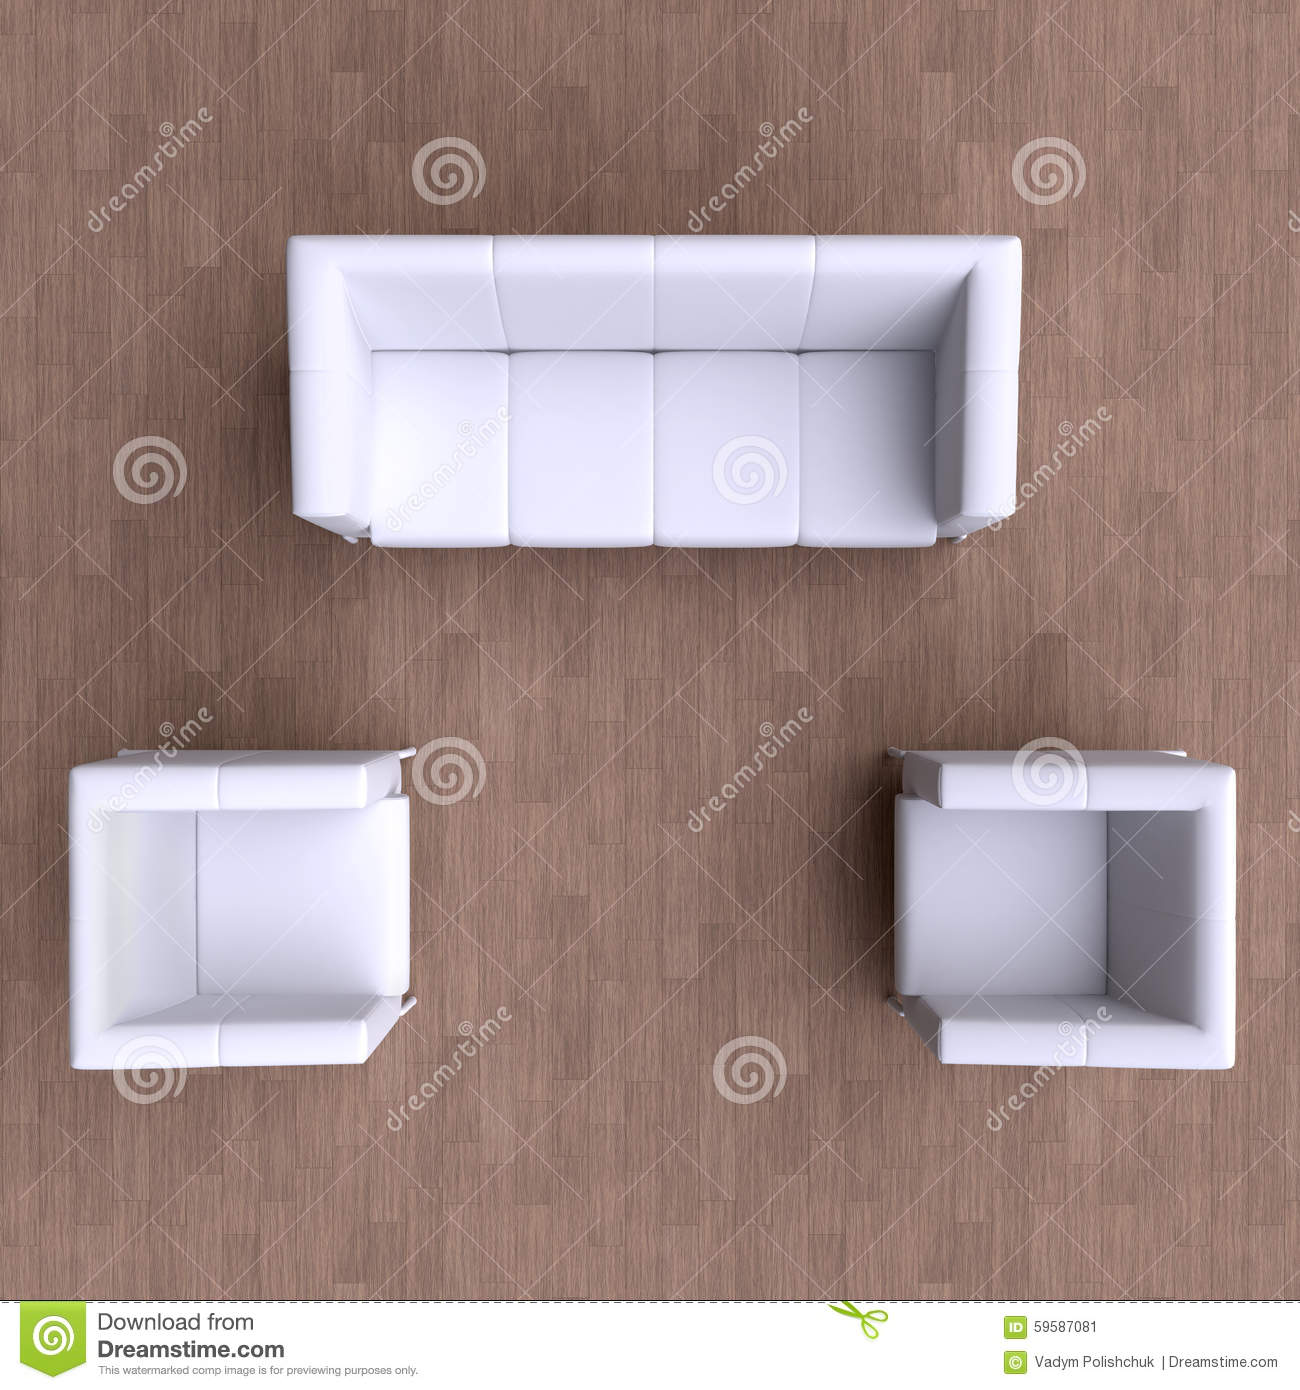 Sofa And Two Chairs. Top View. Stock Illustration - Image: 59587081